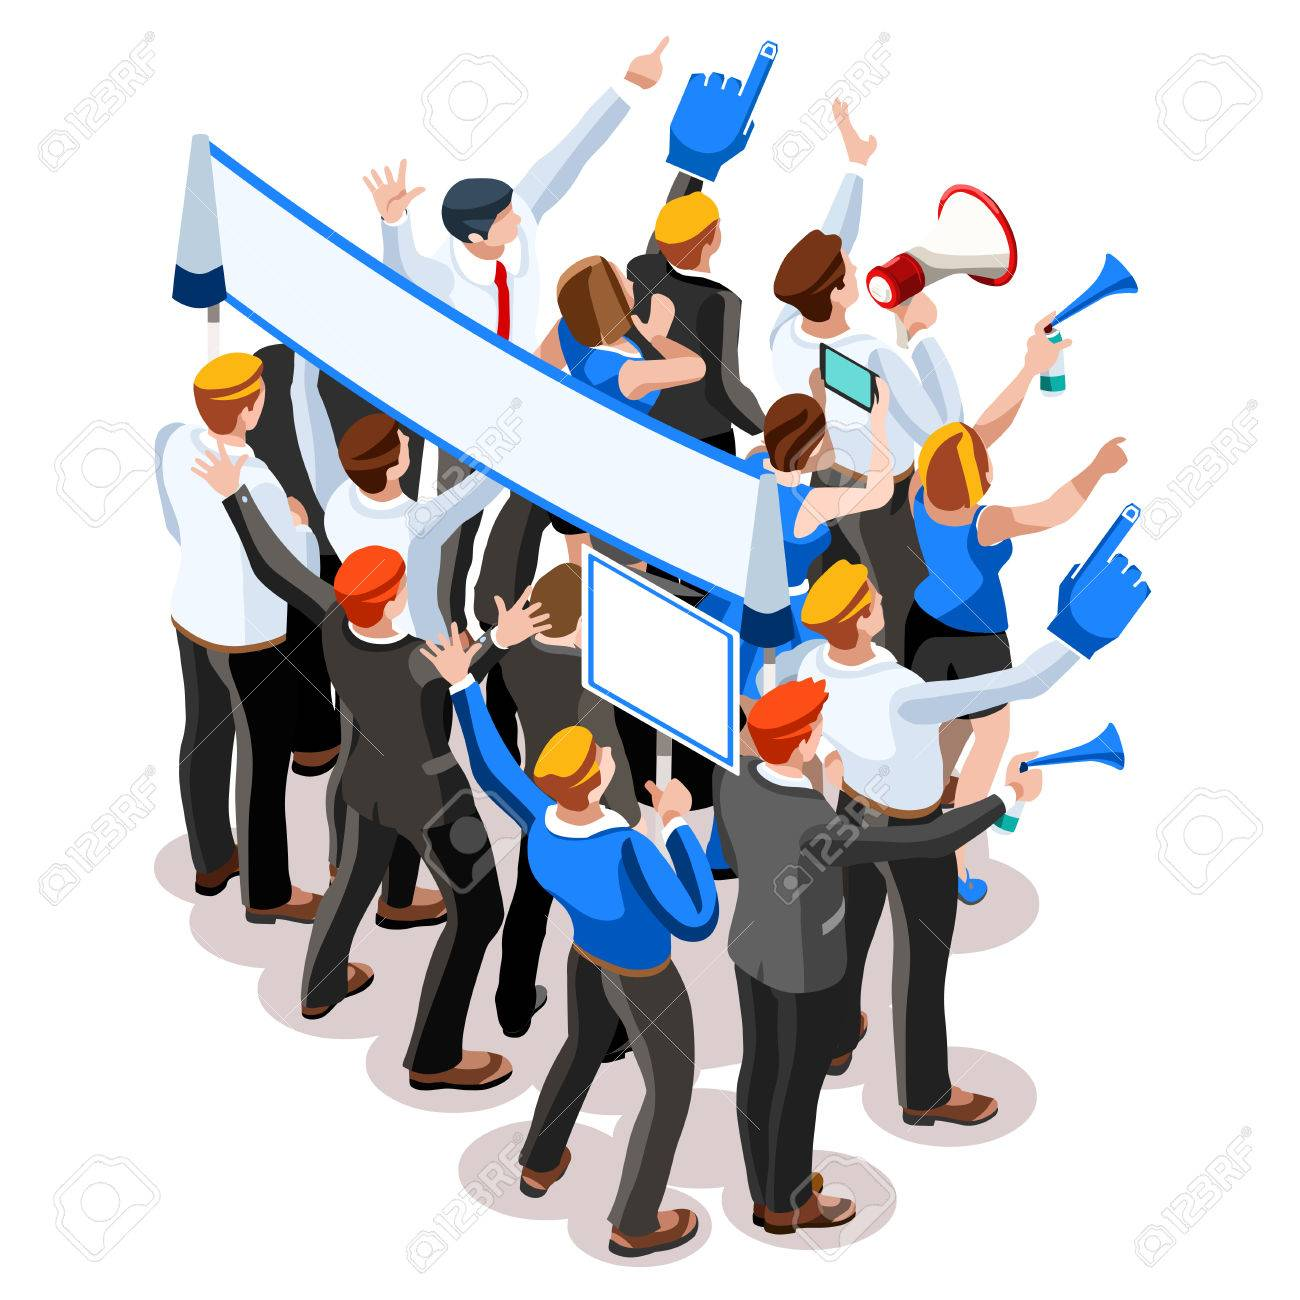 Election infographic.Debate party convention hall.Conference business meeting lecture.Congress theatre auditorium audience.Politic delegate competitors affiliates crowd rally.Vector isometric people - 64657843